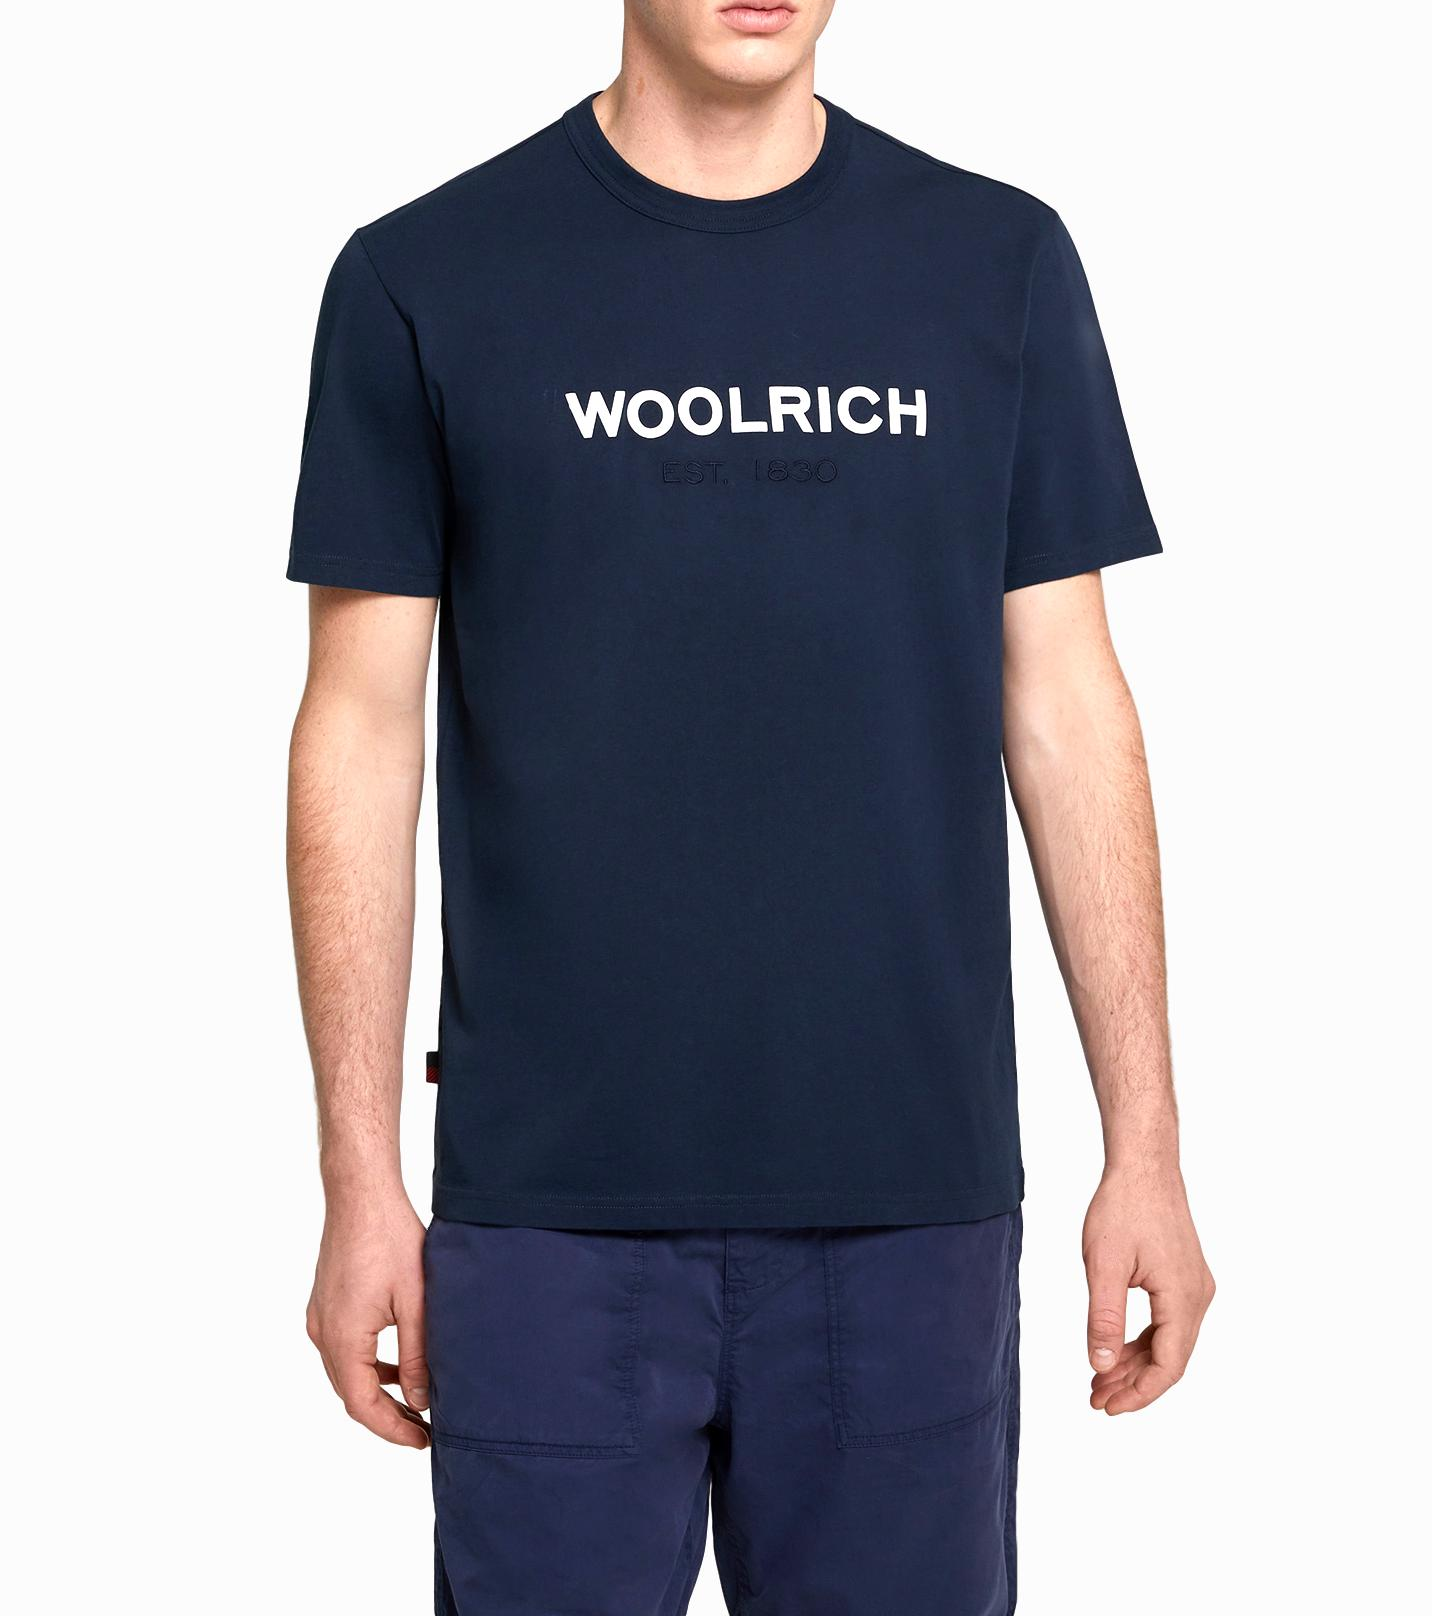 WOOLRICH T SHIRT UOMO Men's Logo T-Shirt Colore: MELTON BLUE